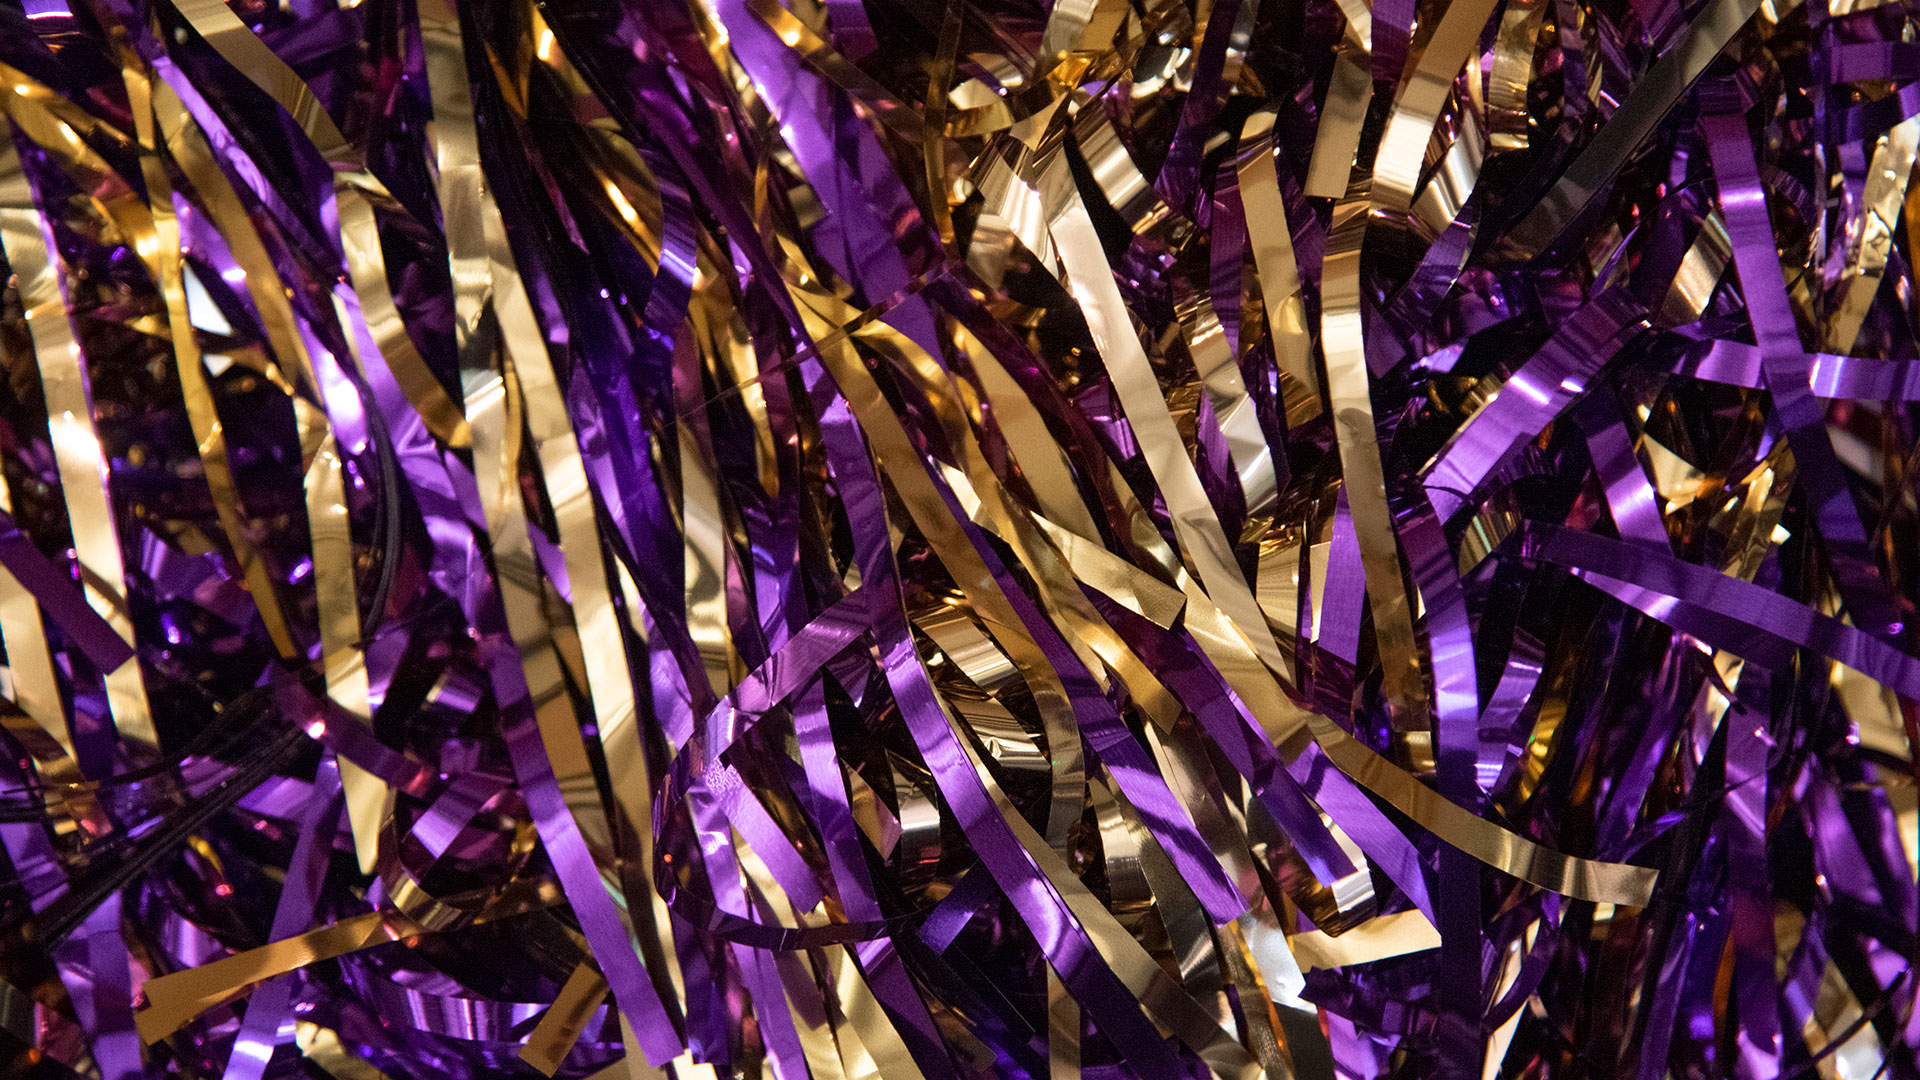 Purple and gold pom poms